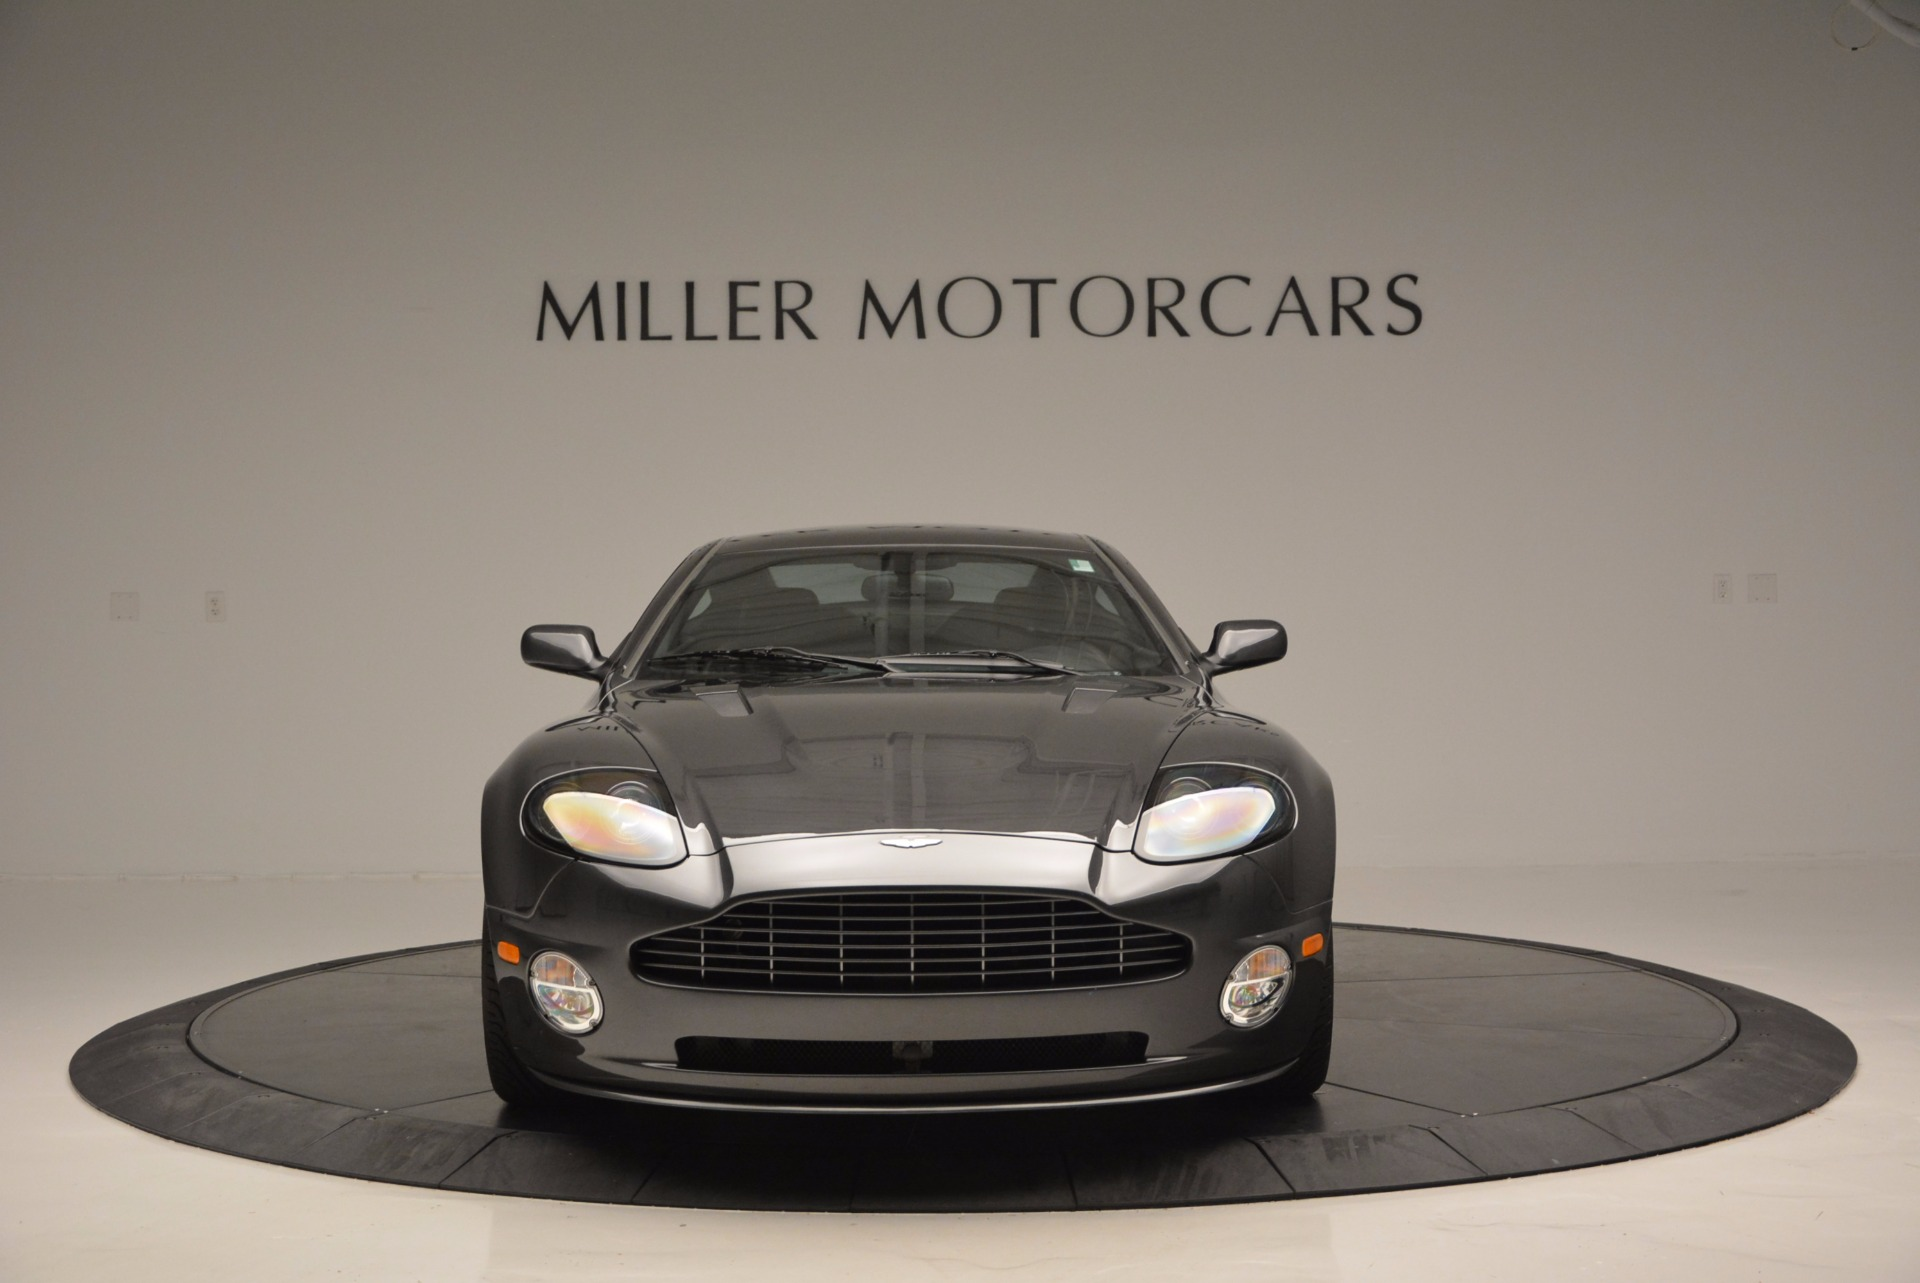 Used 2005 Aston Martin V12 Vanquish S For Sale In Westport, CT 645_p12